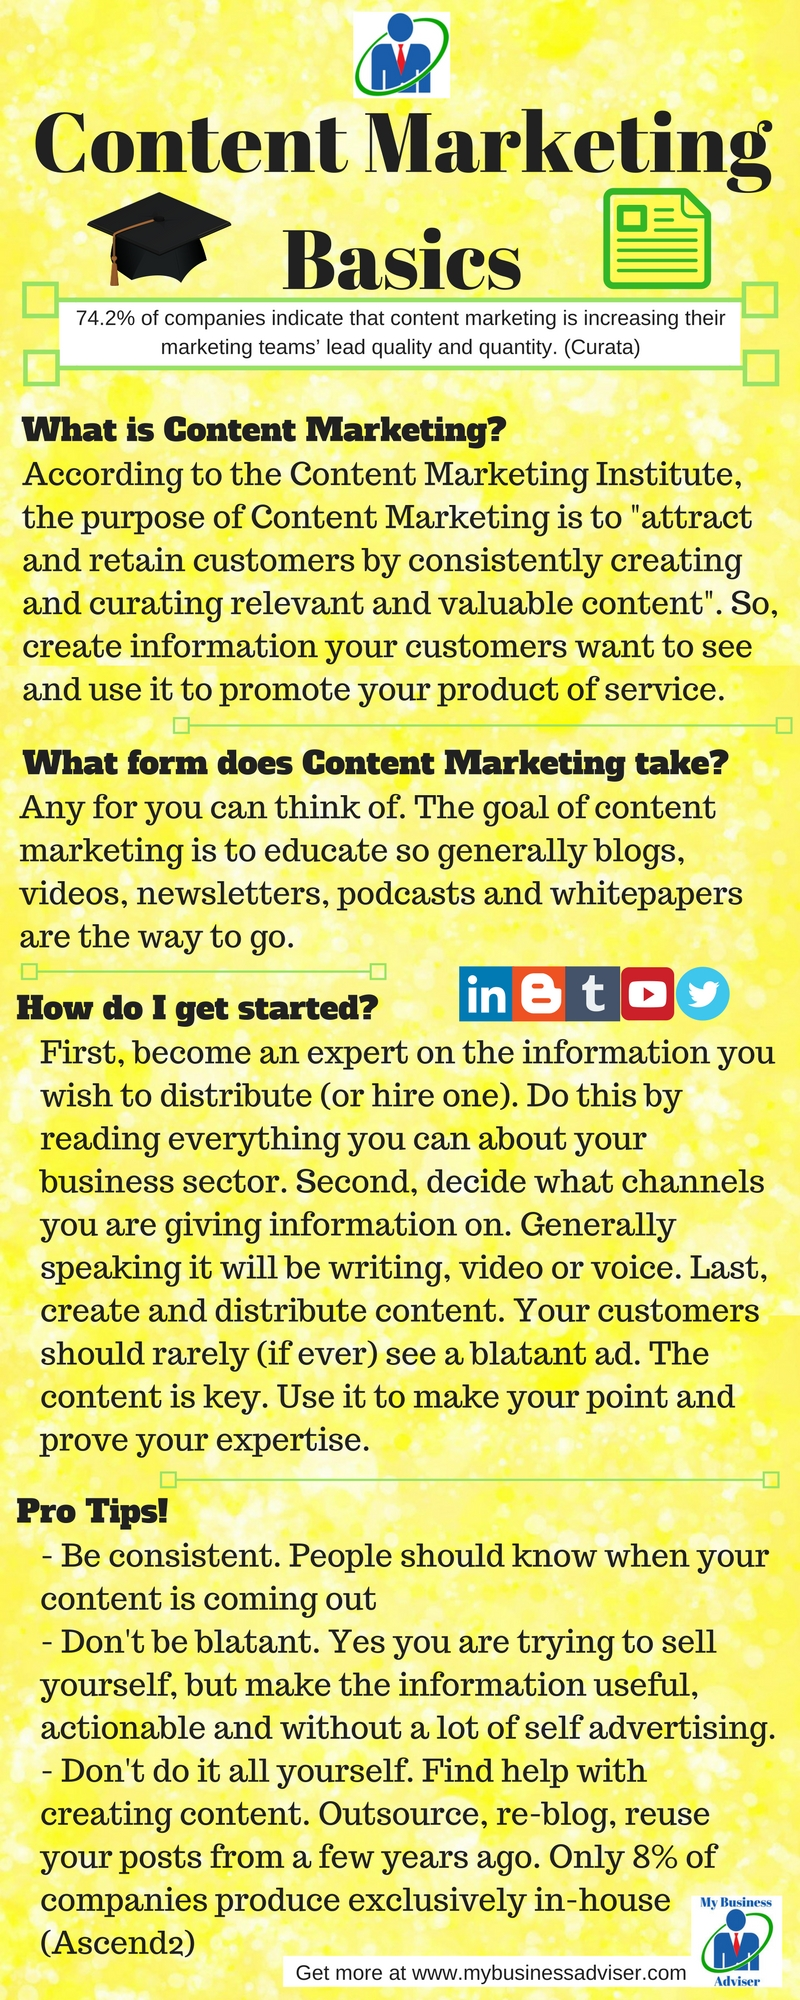 Content Marketing Basics (1)